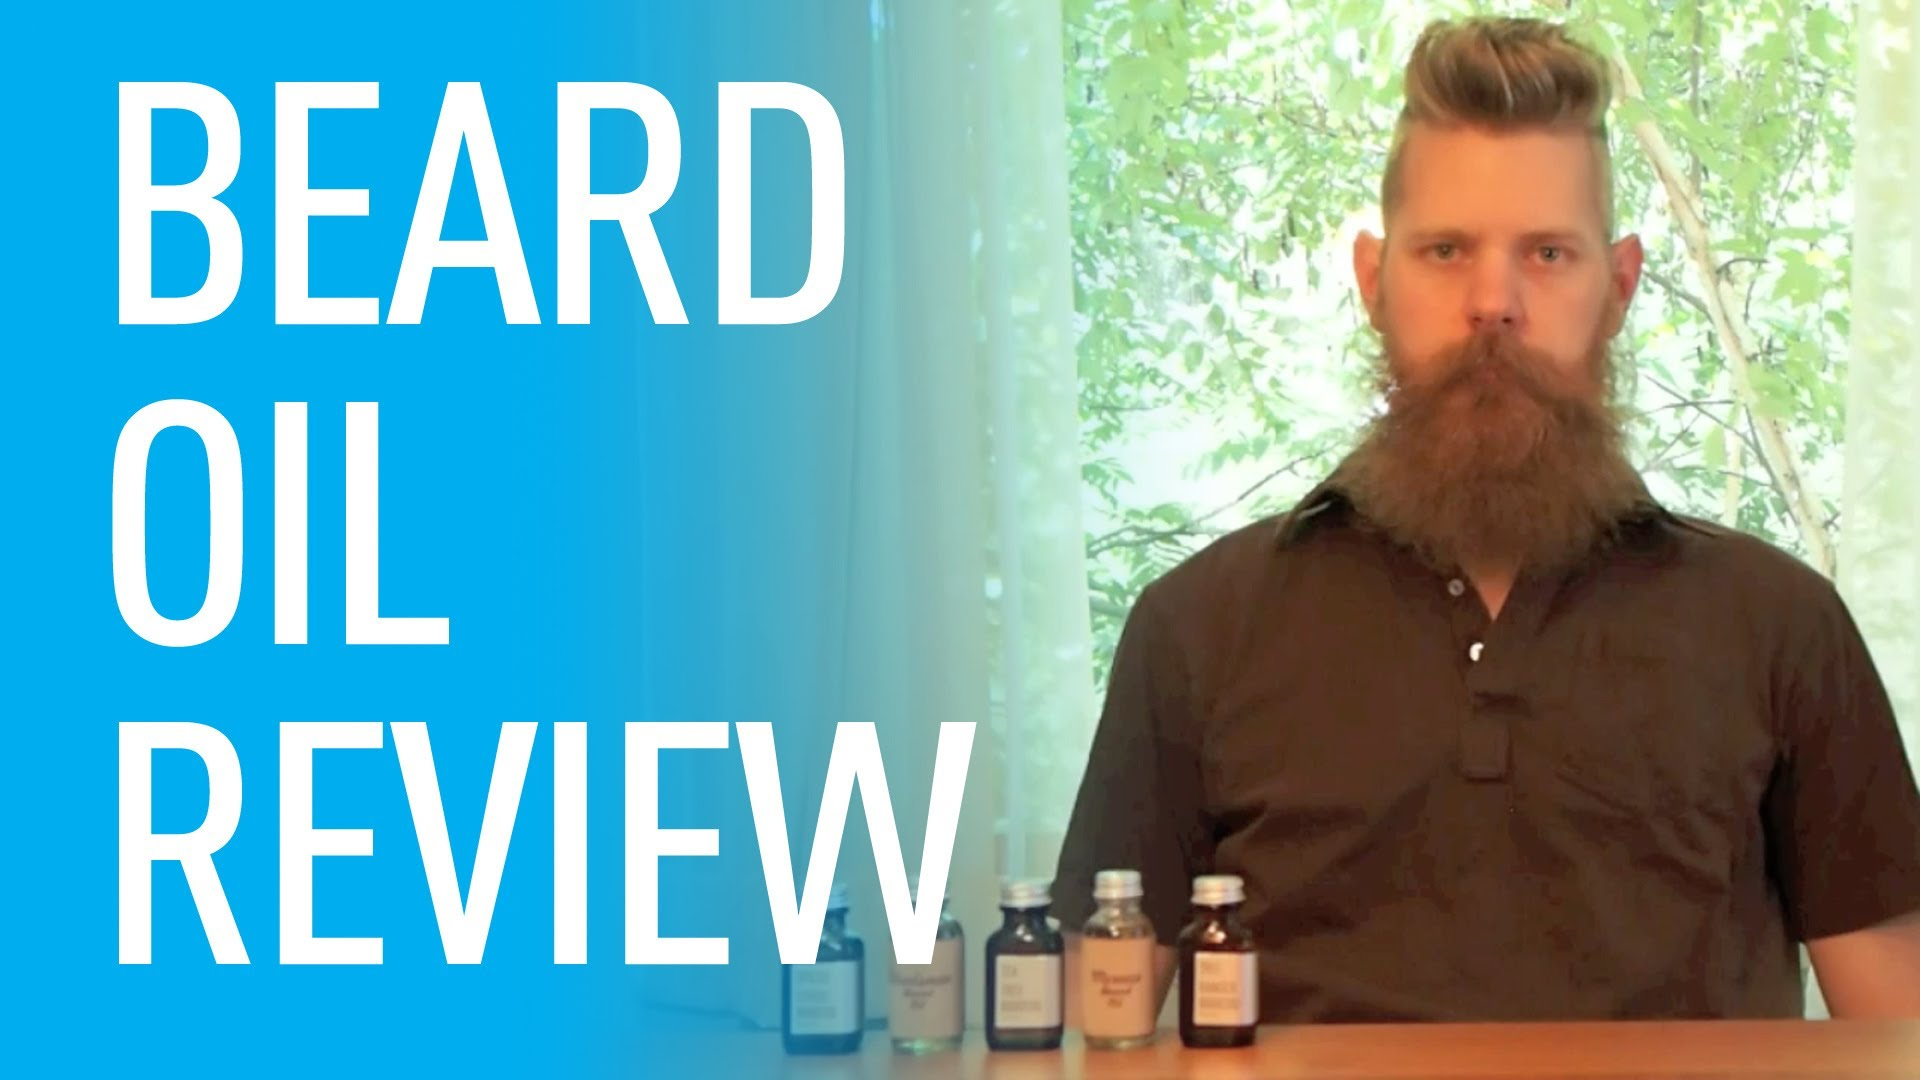 Good Beard Oils